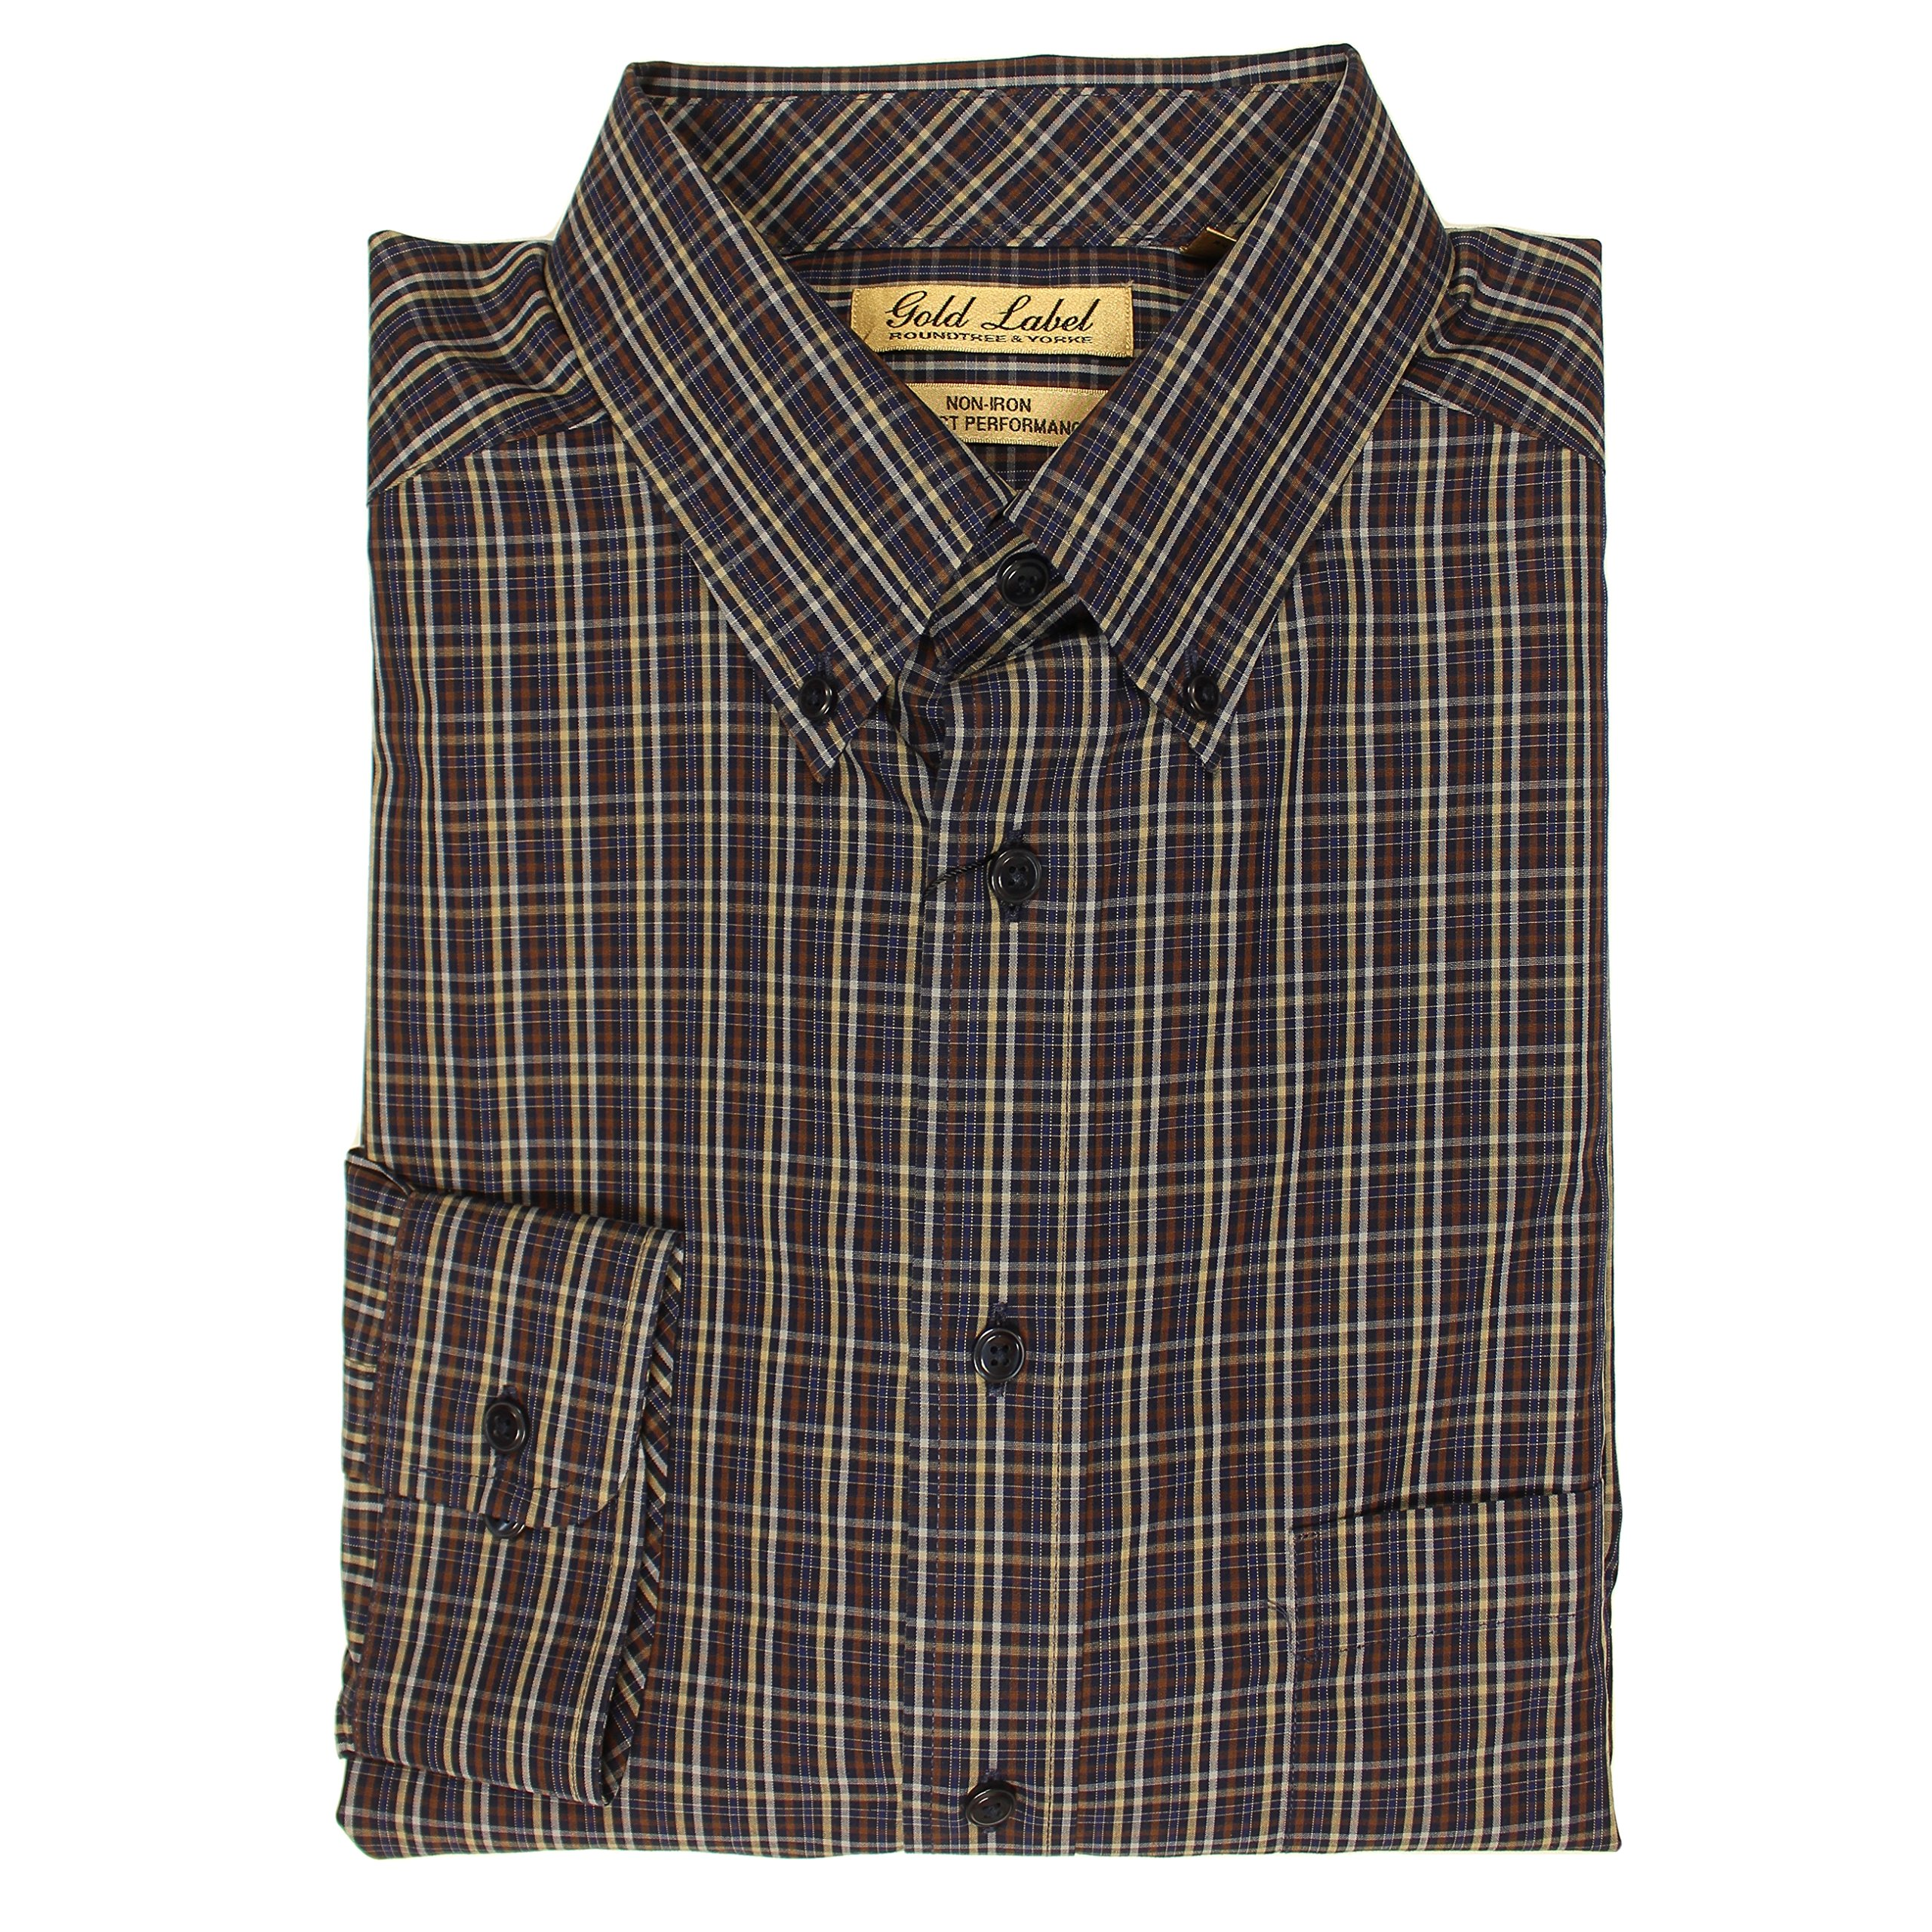 Roundtree & Yorke Gold Label Non-Iron Wrinkle Free Perfect Performance Mens Big & Tall Long Sleeve Shirt (Navy Blue/Brwn Fine Plaid, 2XT)